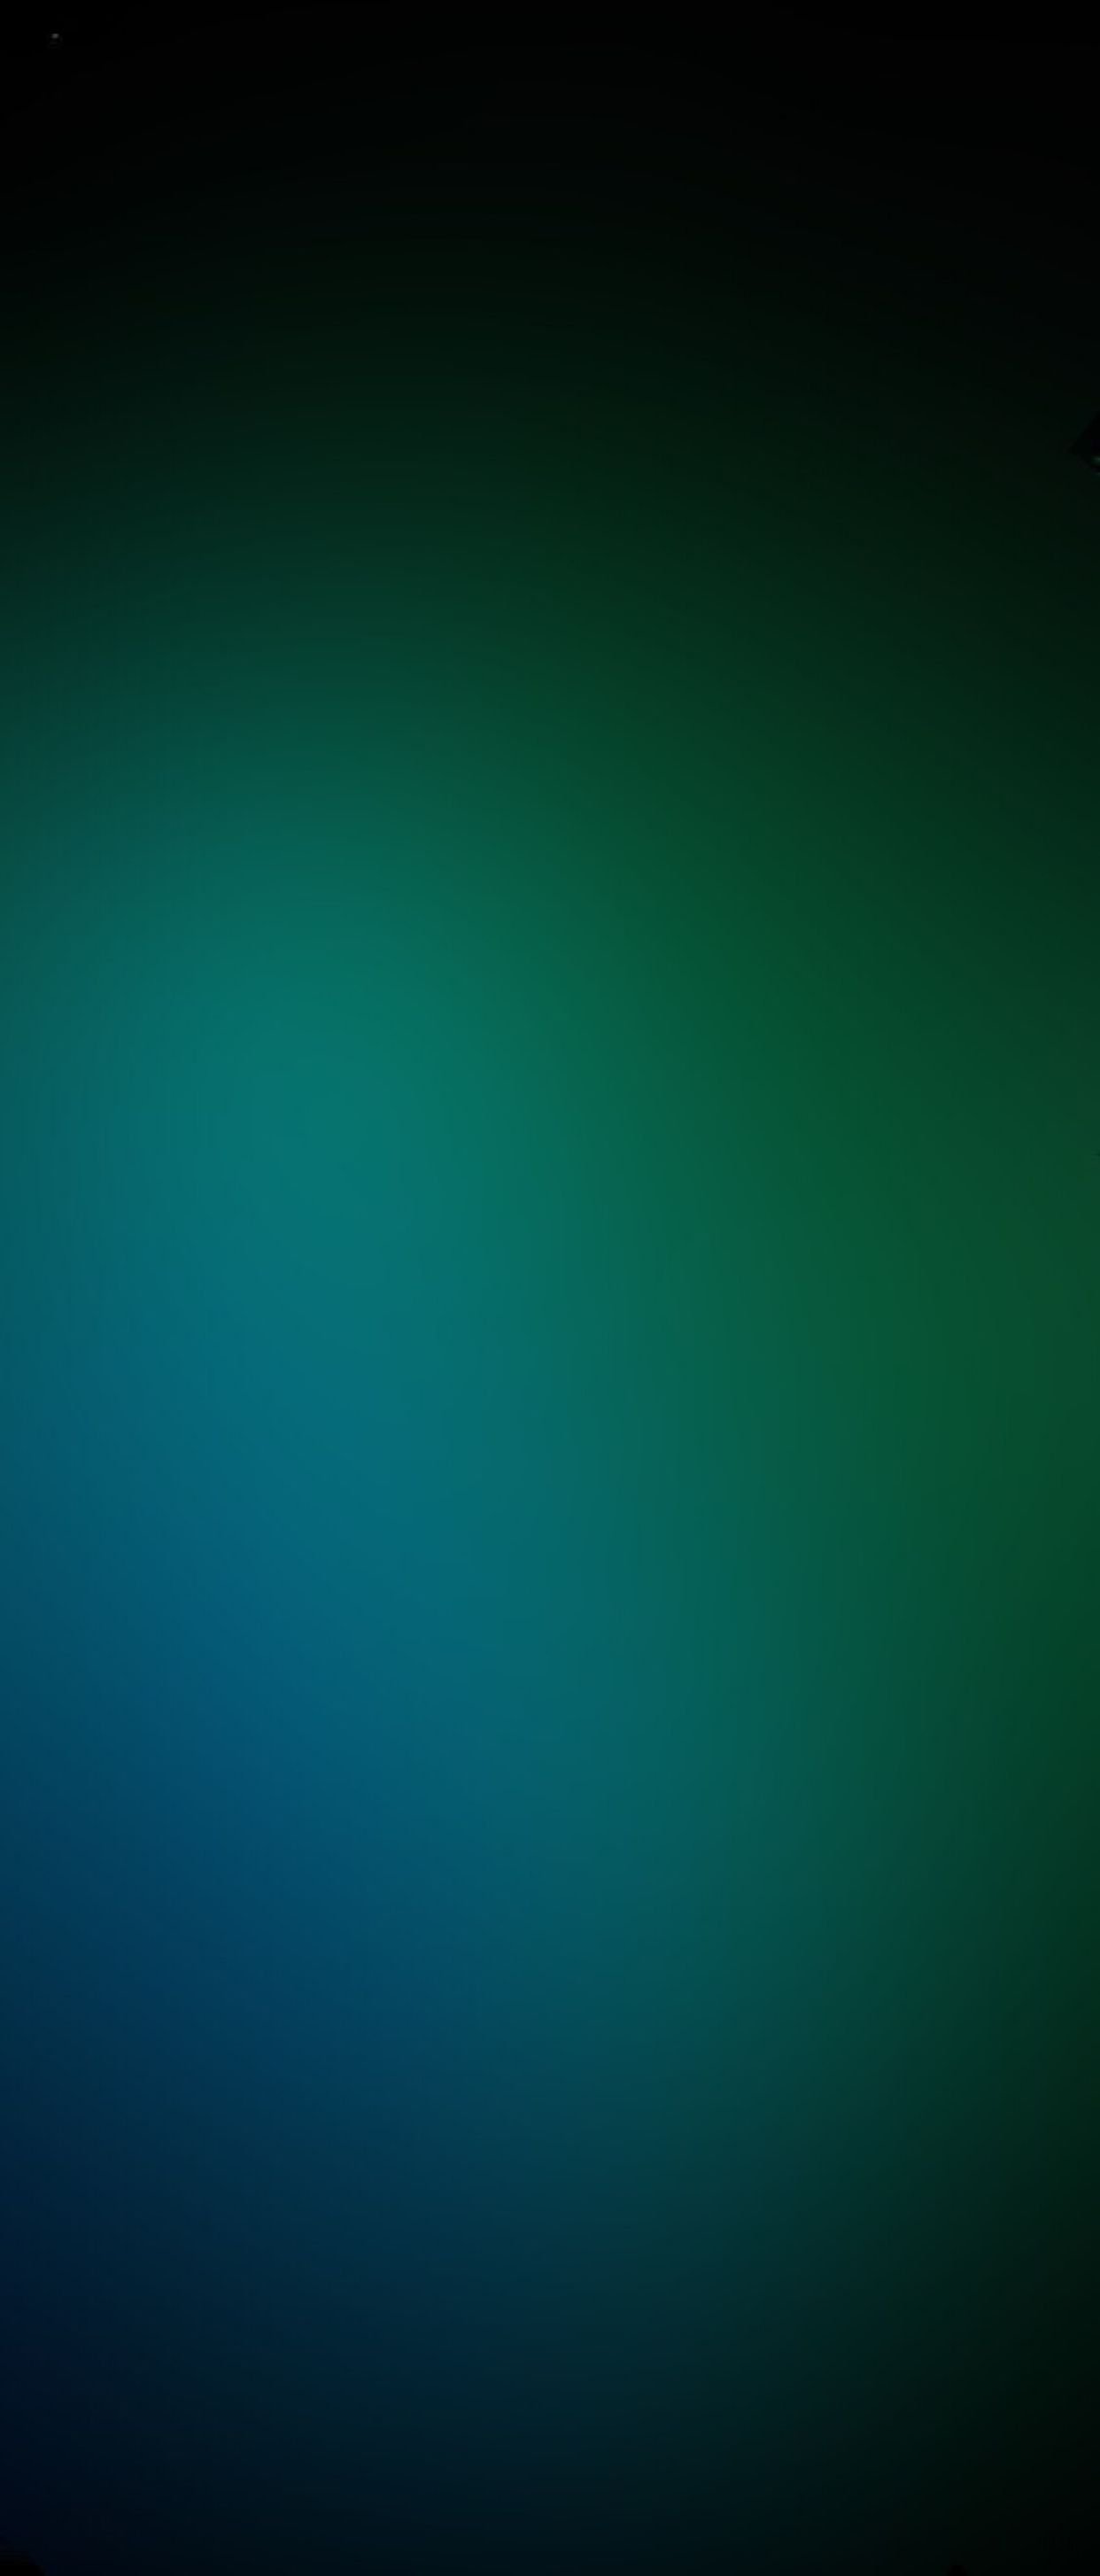 Cool Iphone Wallpaper Ideas Green Wallpaper Clean Galaxy Colour Abstract Digital